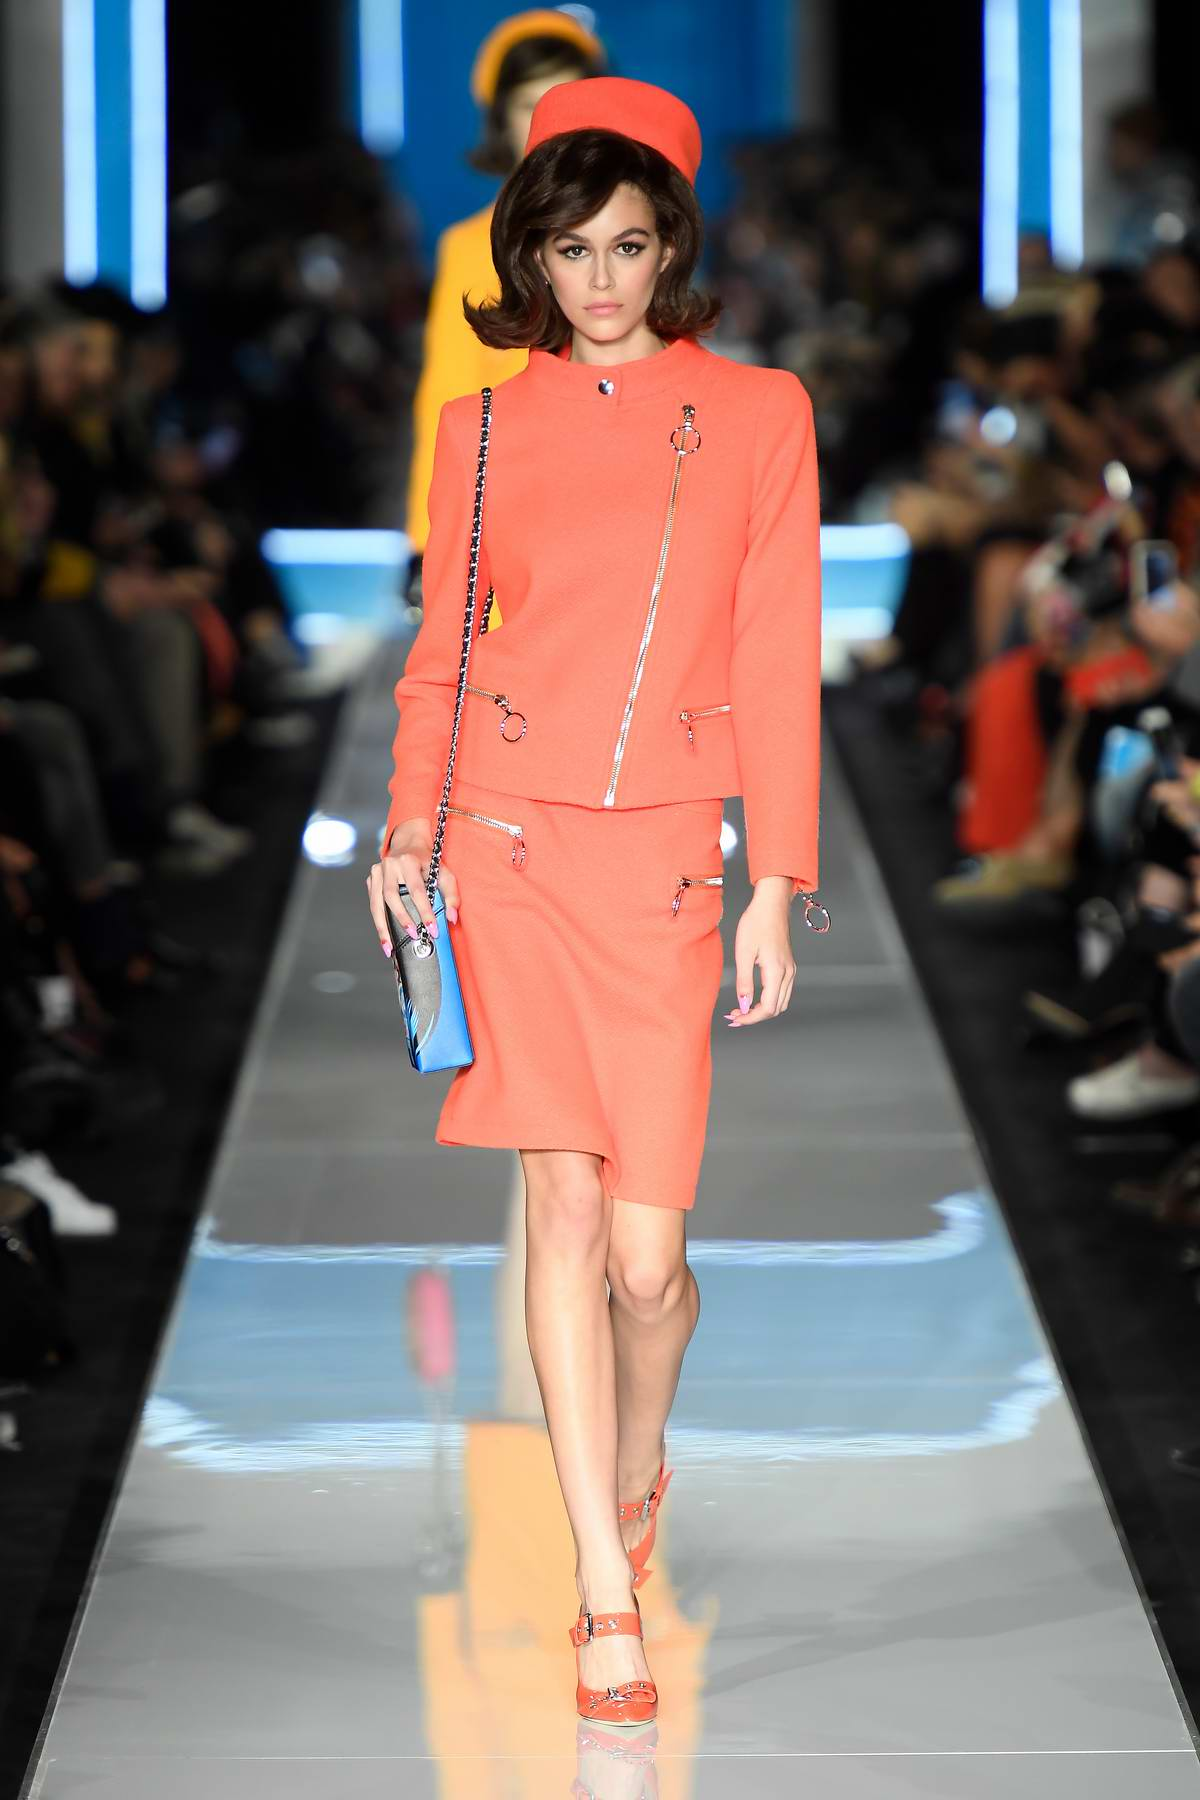 Kaia gerber walks the runway at the moschino show during for Milan fashion school